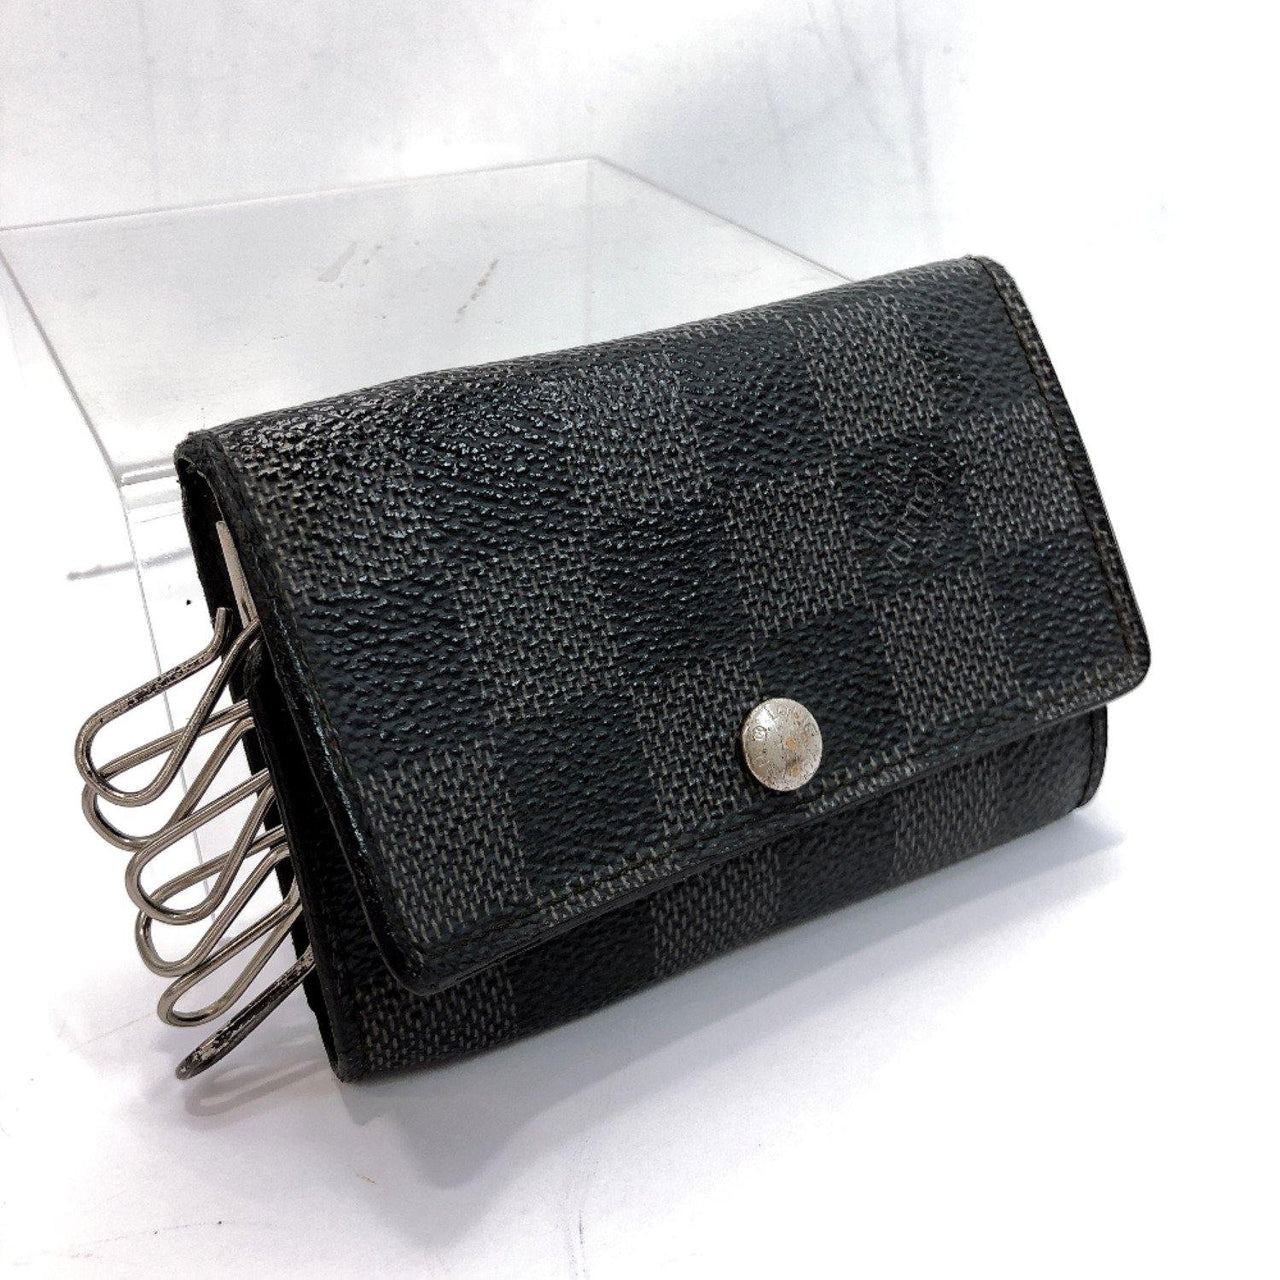 LOUIS VUITTON key holder M62662 Multicles6 Damier Grafitto Canvas black mens Used